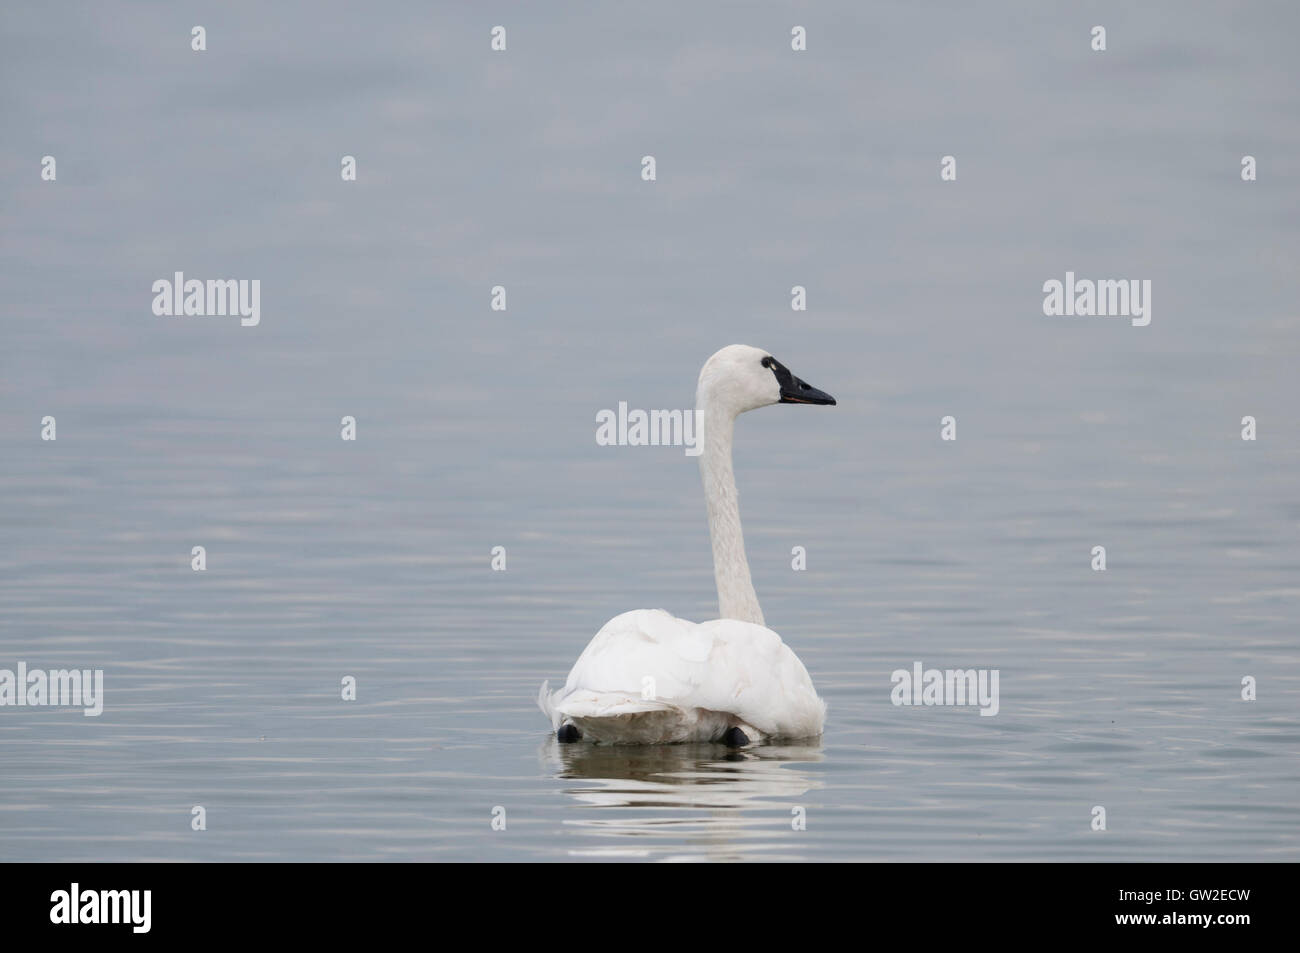 Tundra Swan (Cygnus columbianus) on a migratory stop at Tule Lake National Wildlife Refuge, Northern California Stock Photo